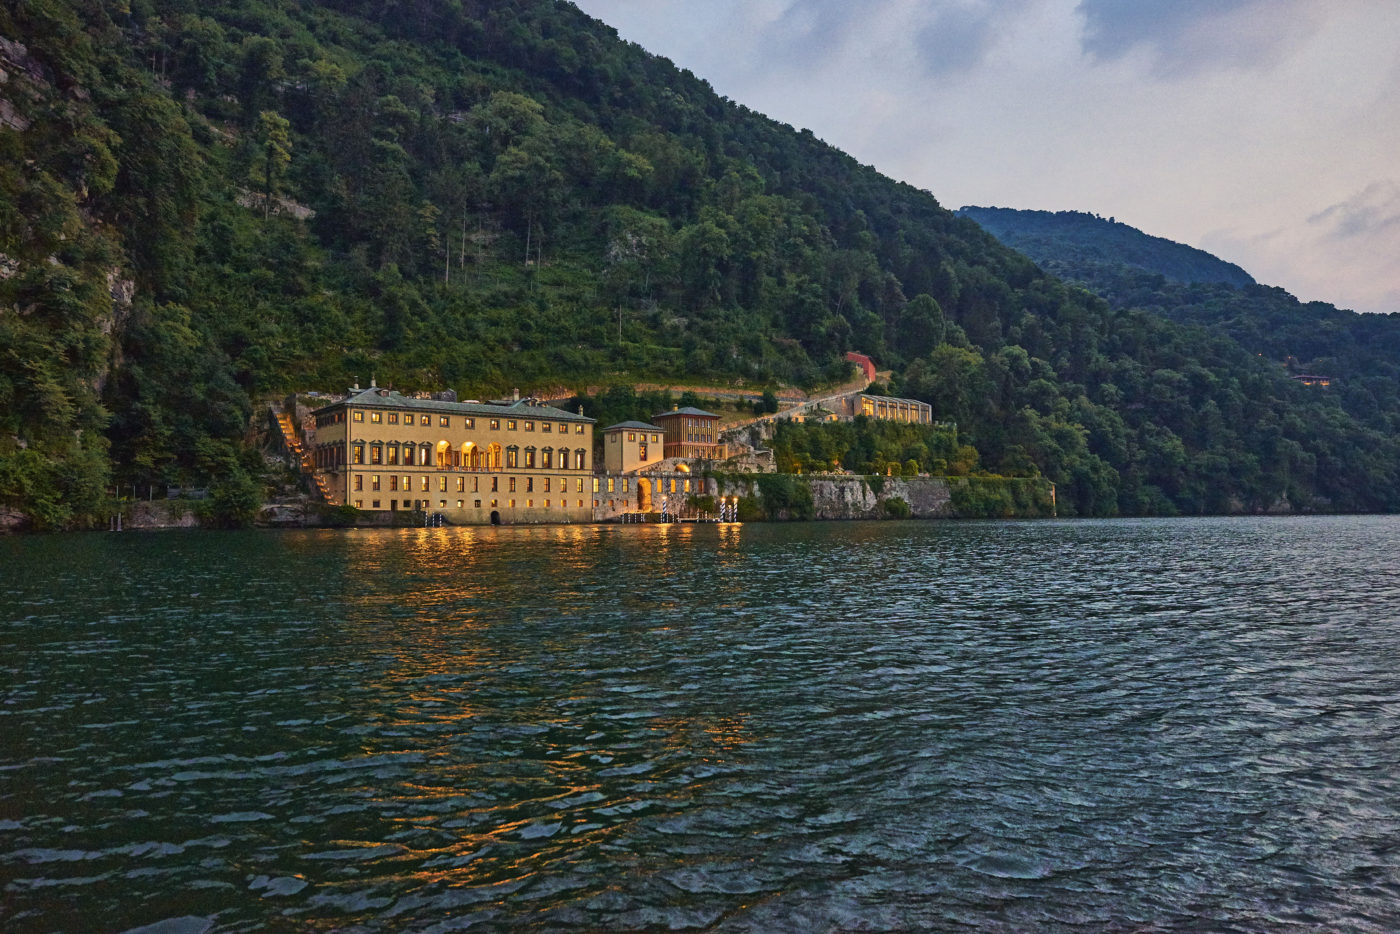 wedding location in lake como LS-F2016-06-PT0252-1400x934